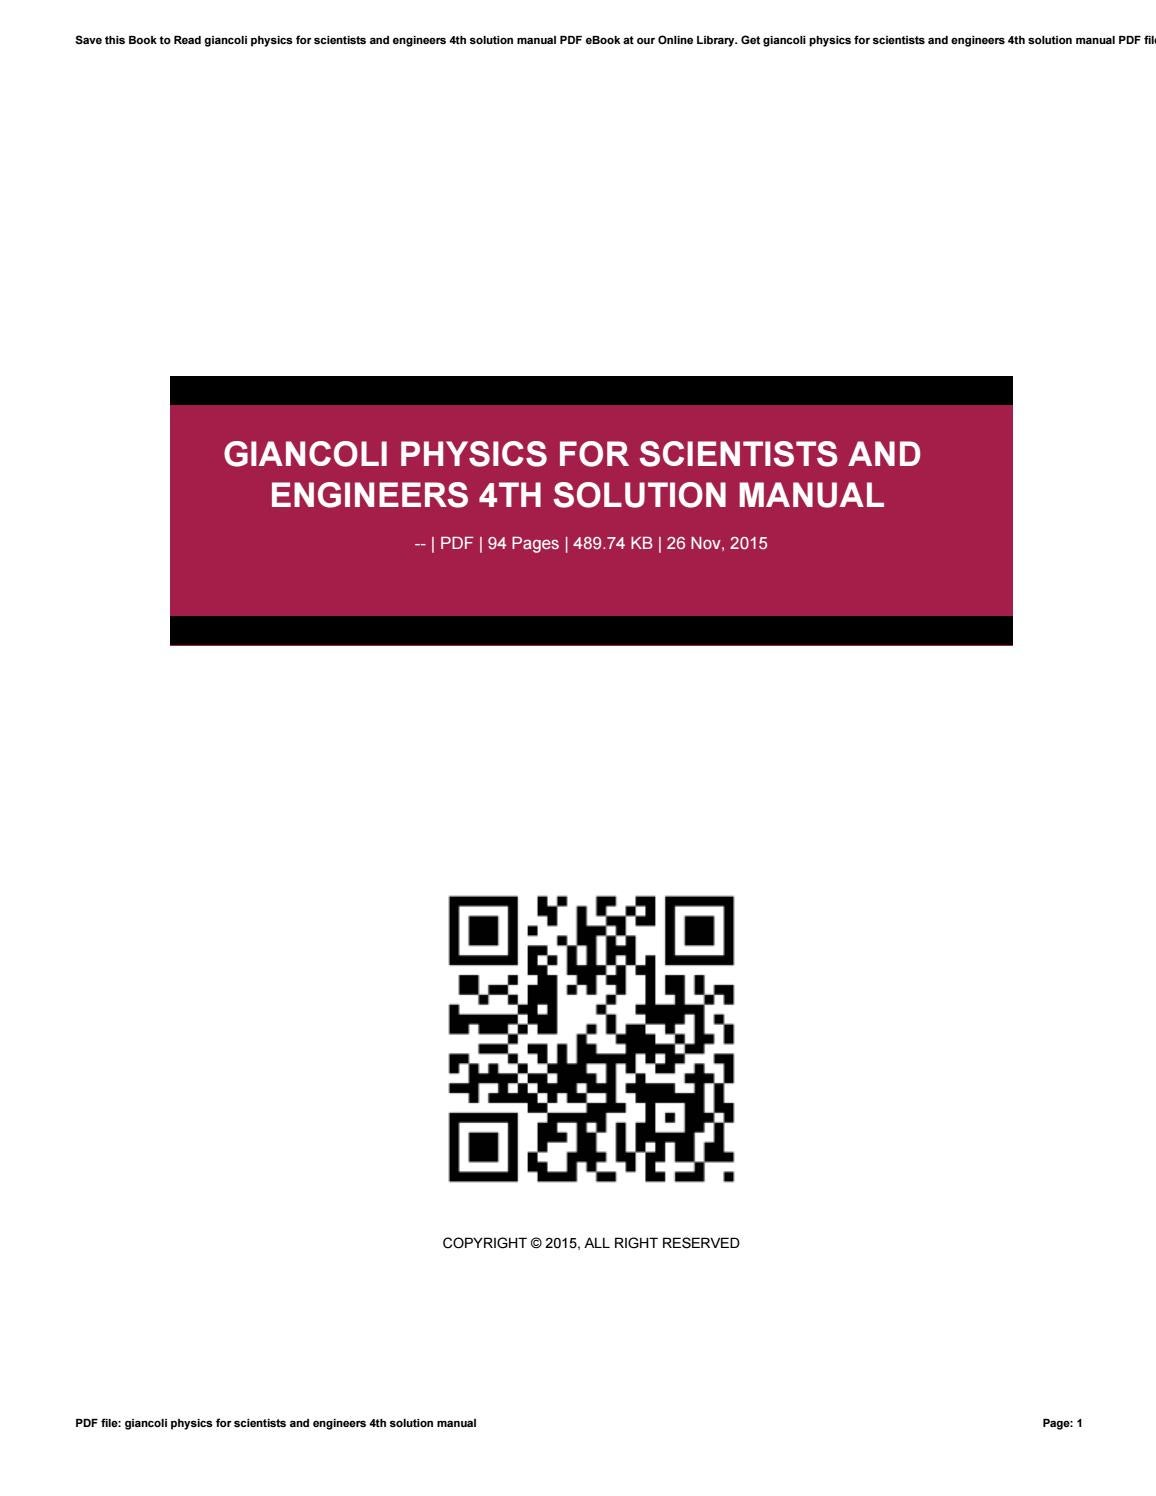 Giancoli physics for scientists and engineers 4th solution manual by  kasola95hsopam - issuu